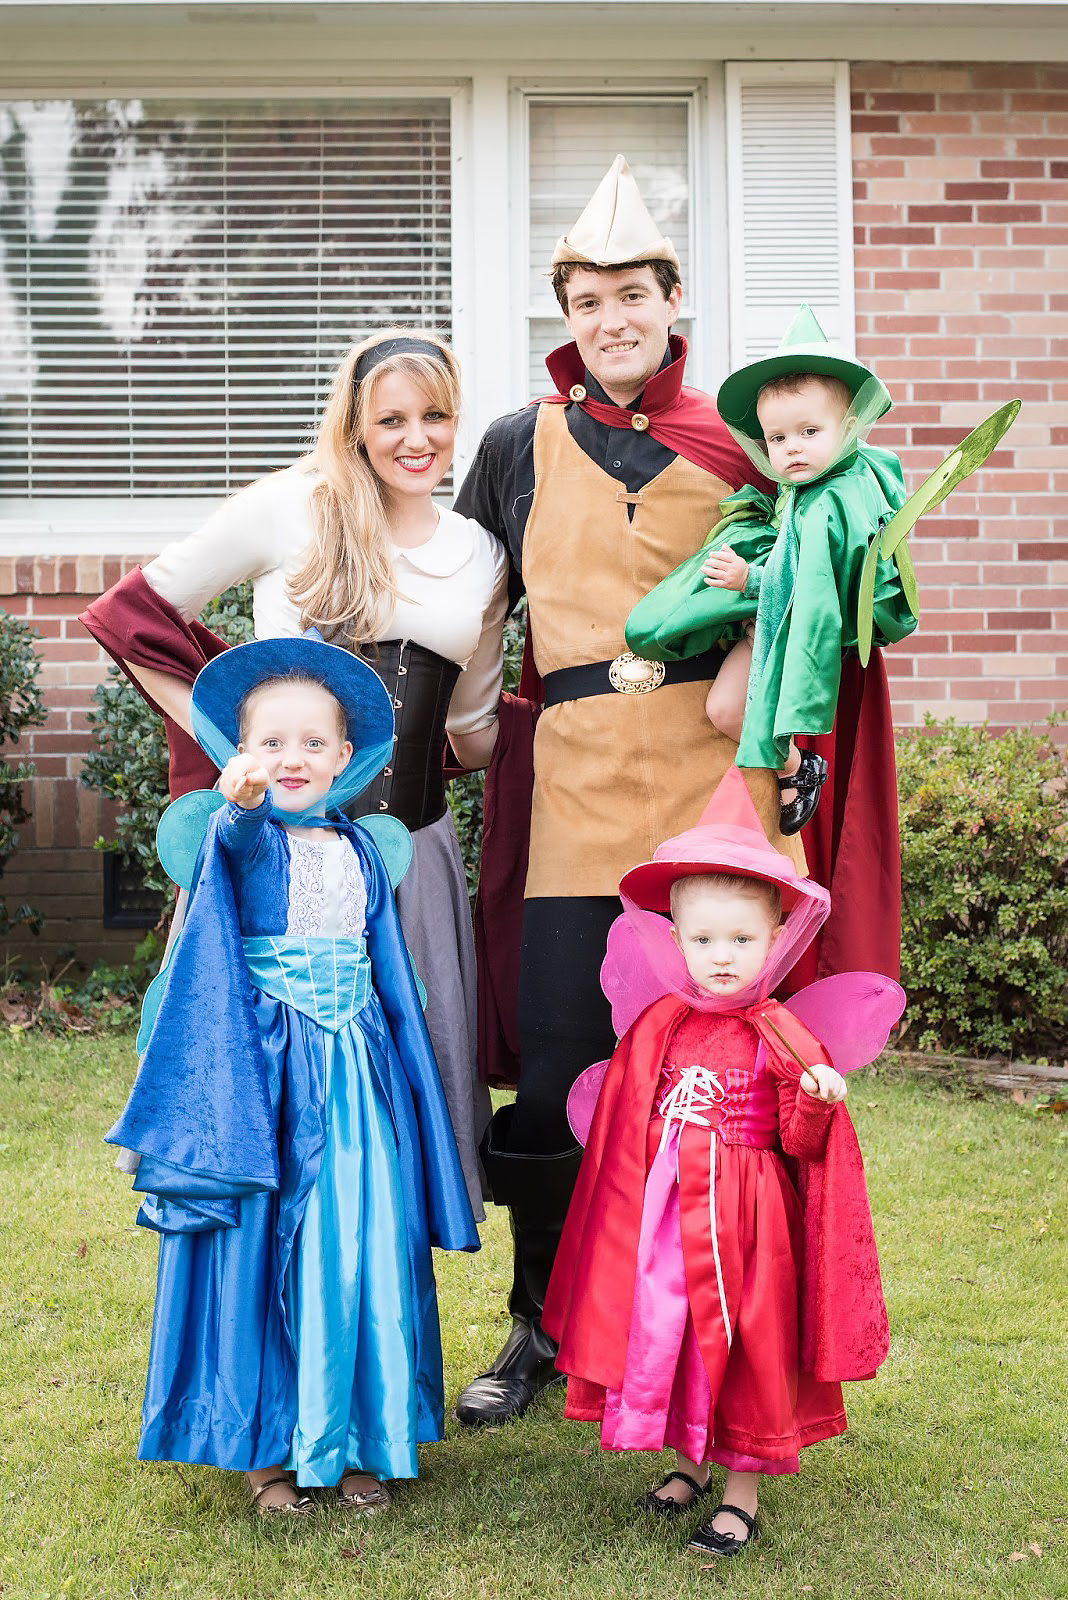 Best Halloween Costumes for Family and Kids, Sleeping Beauty Family Theme with Fairies kid costume, Best Homemade Costumes || Darling Darleen